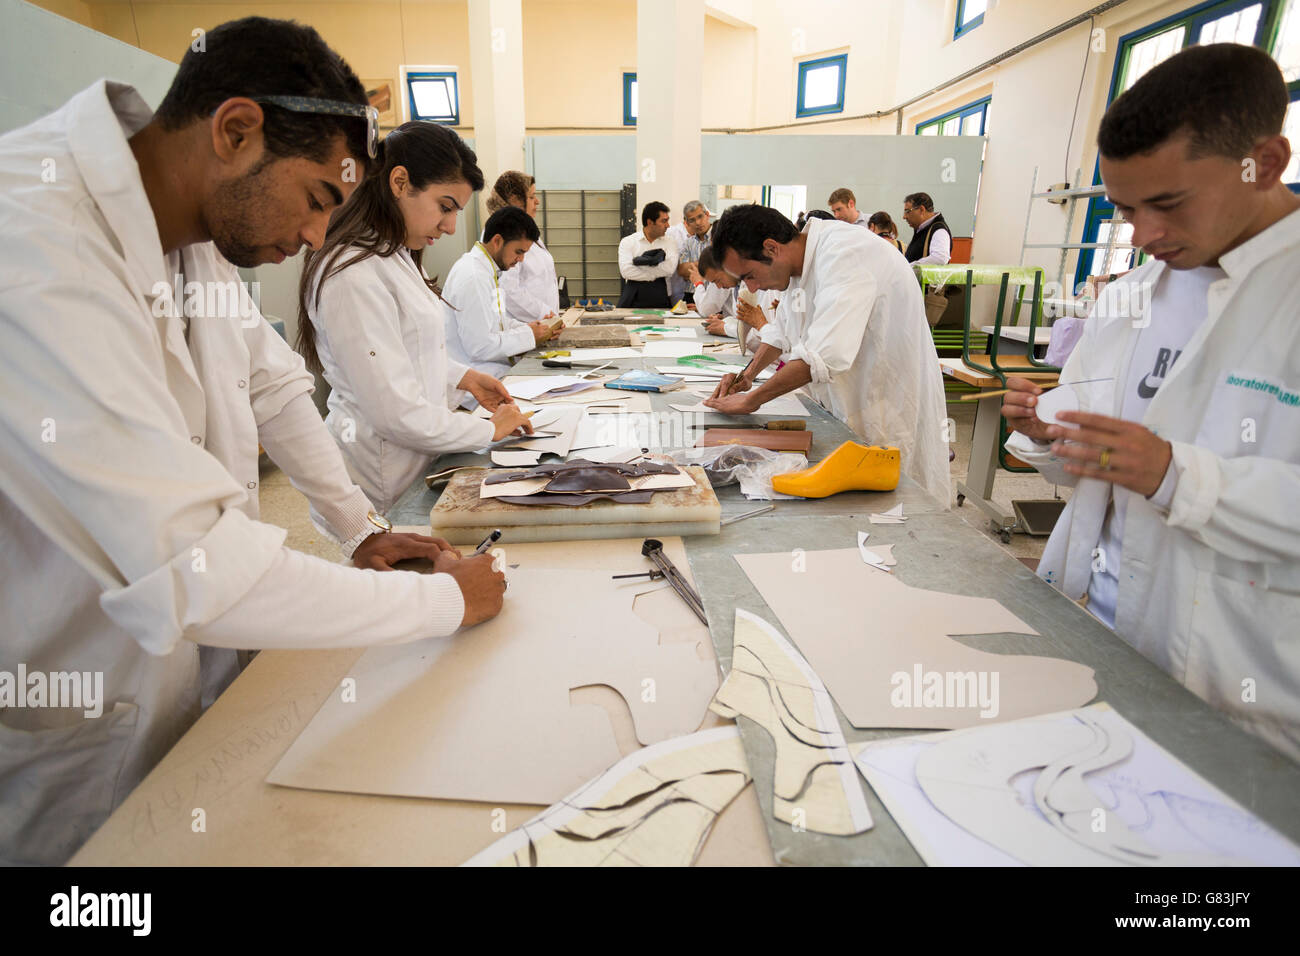 Students learn shoe making, design and leatherwork at the Institute of Traditional Arts in Fez, Morocco. - Stock Image